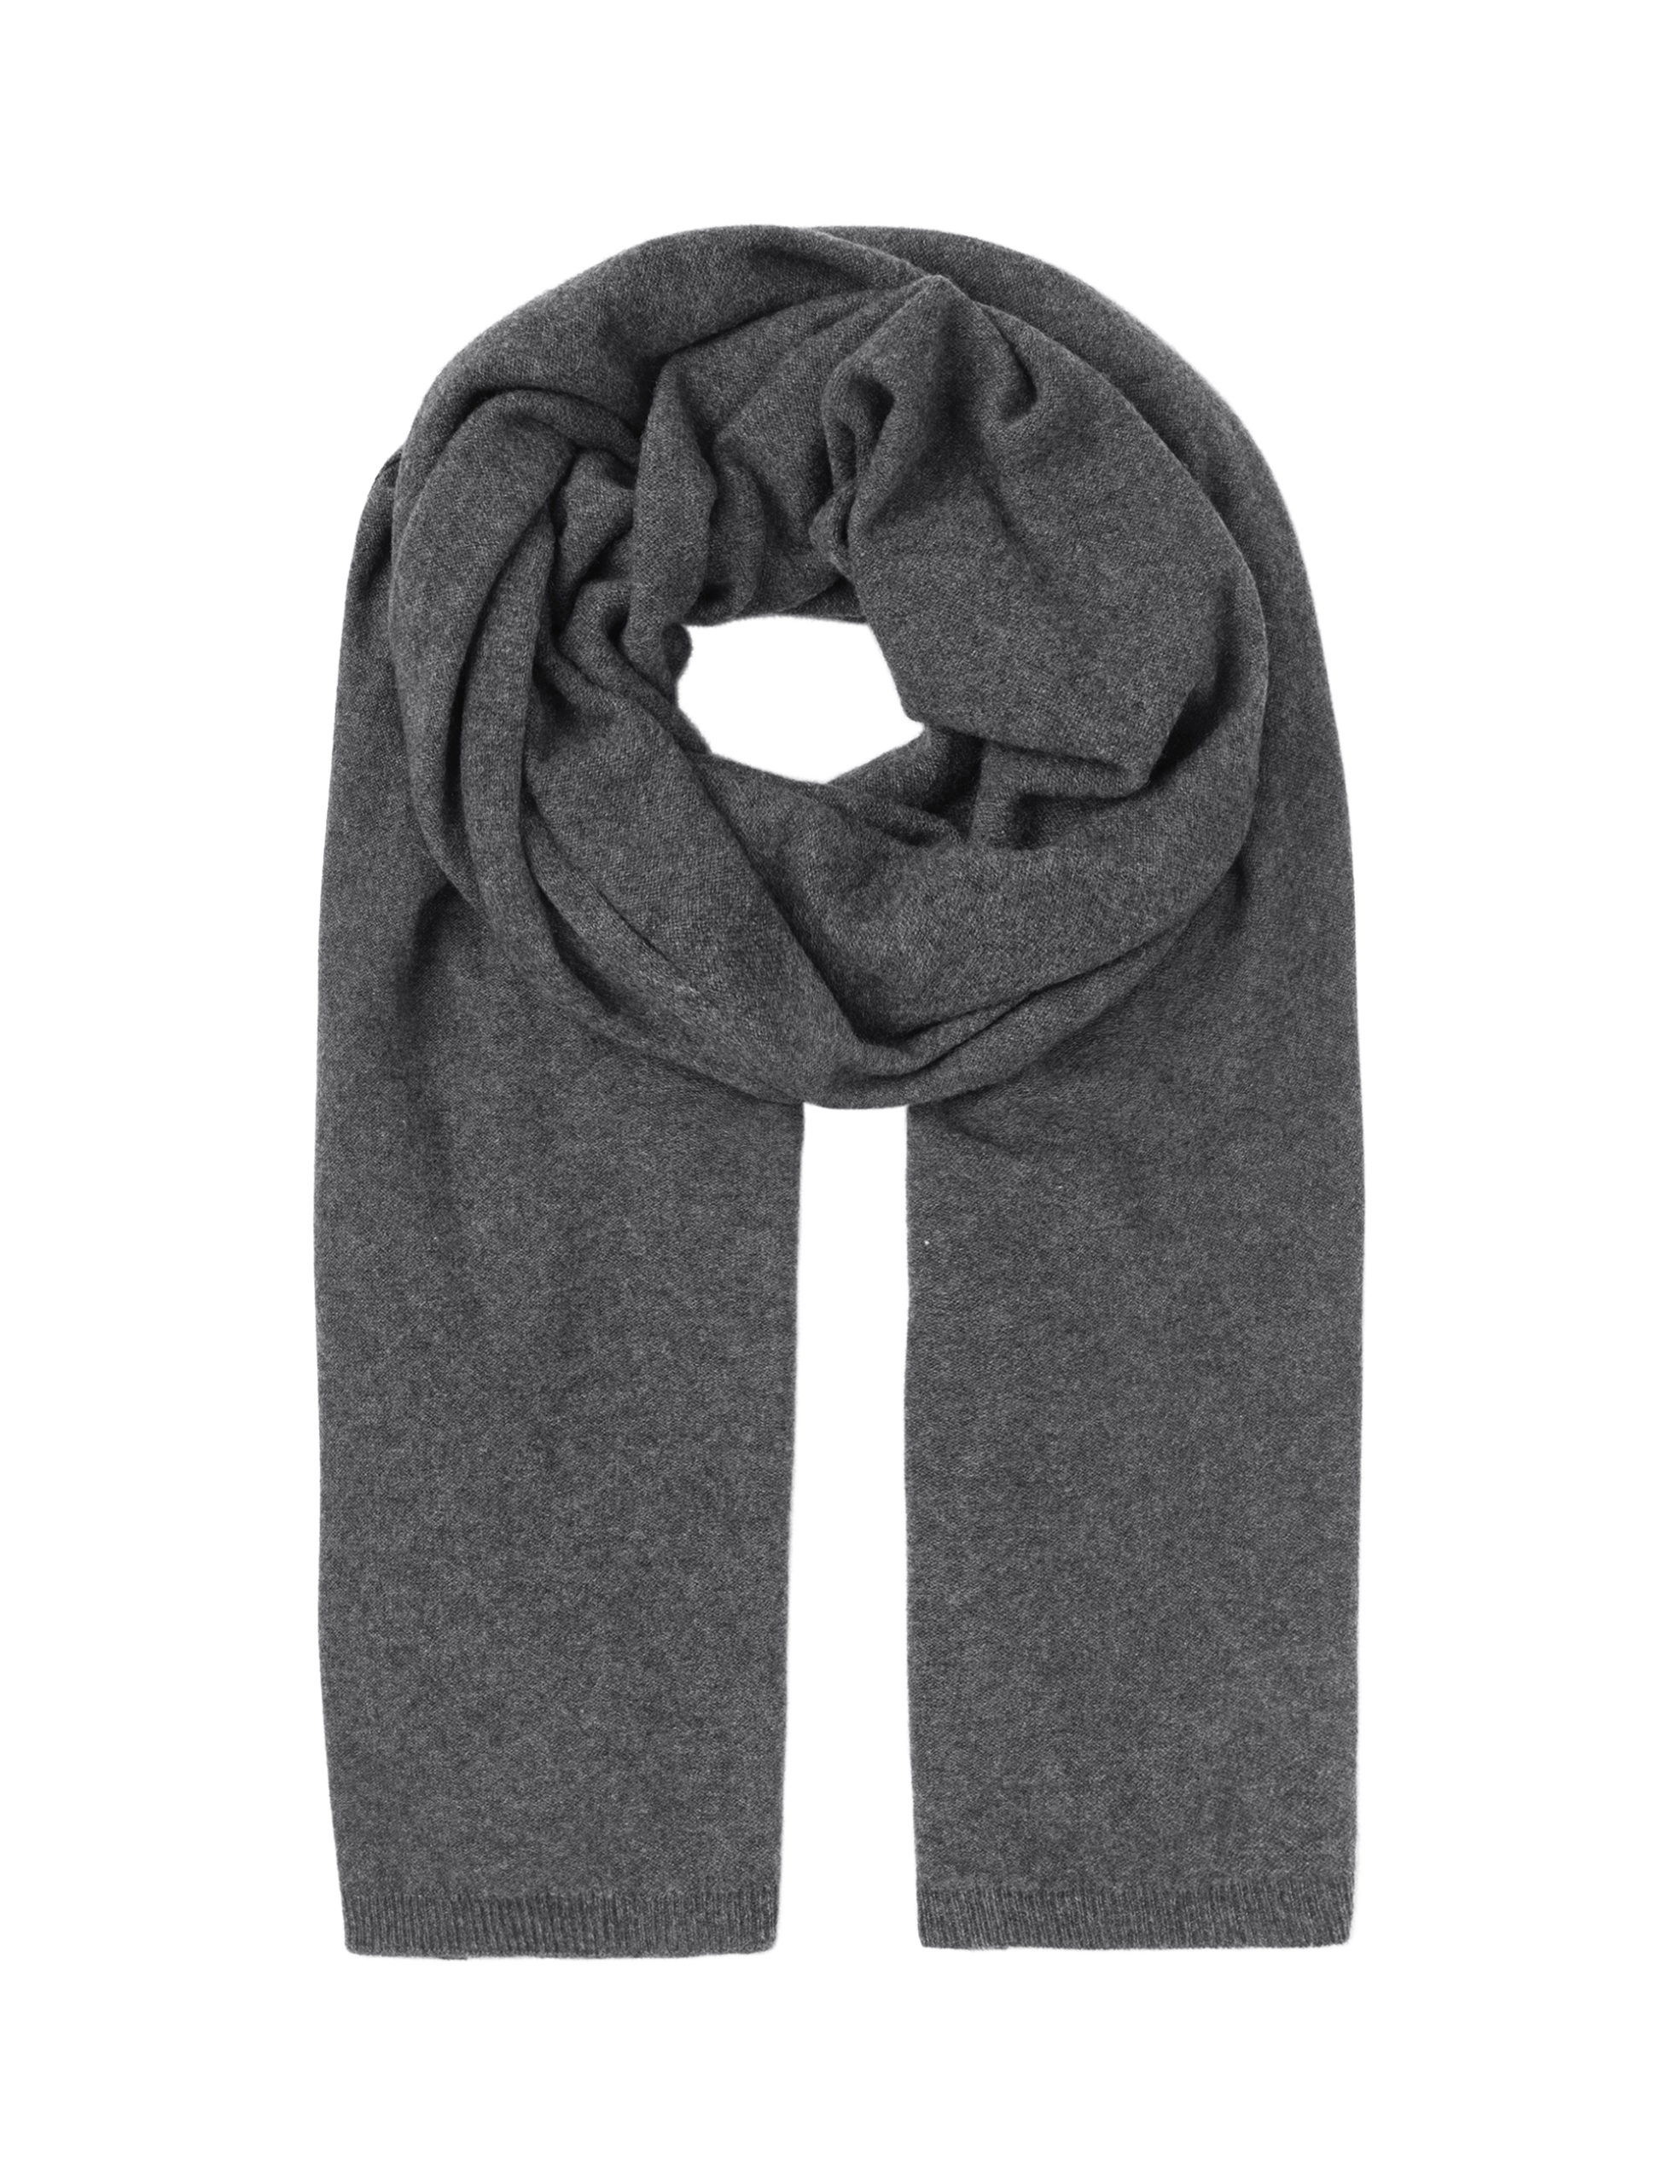 SCARF – Charcoal